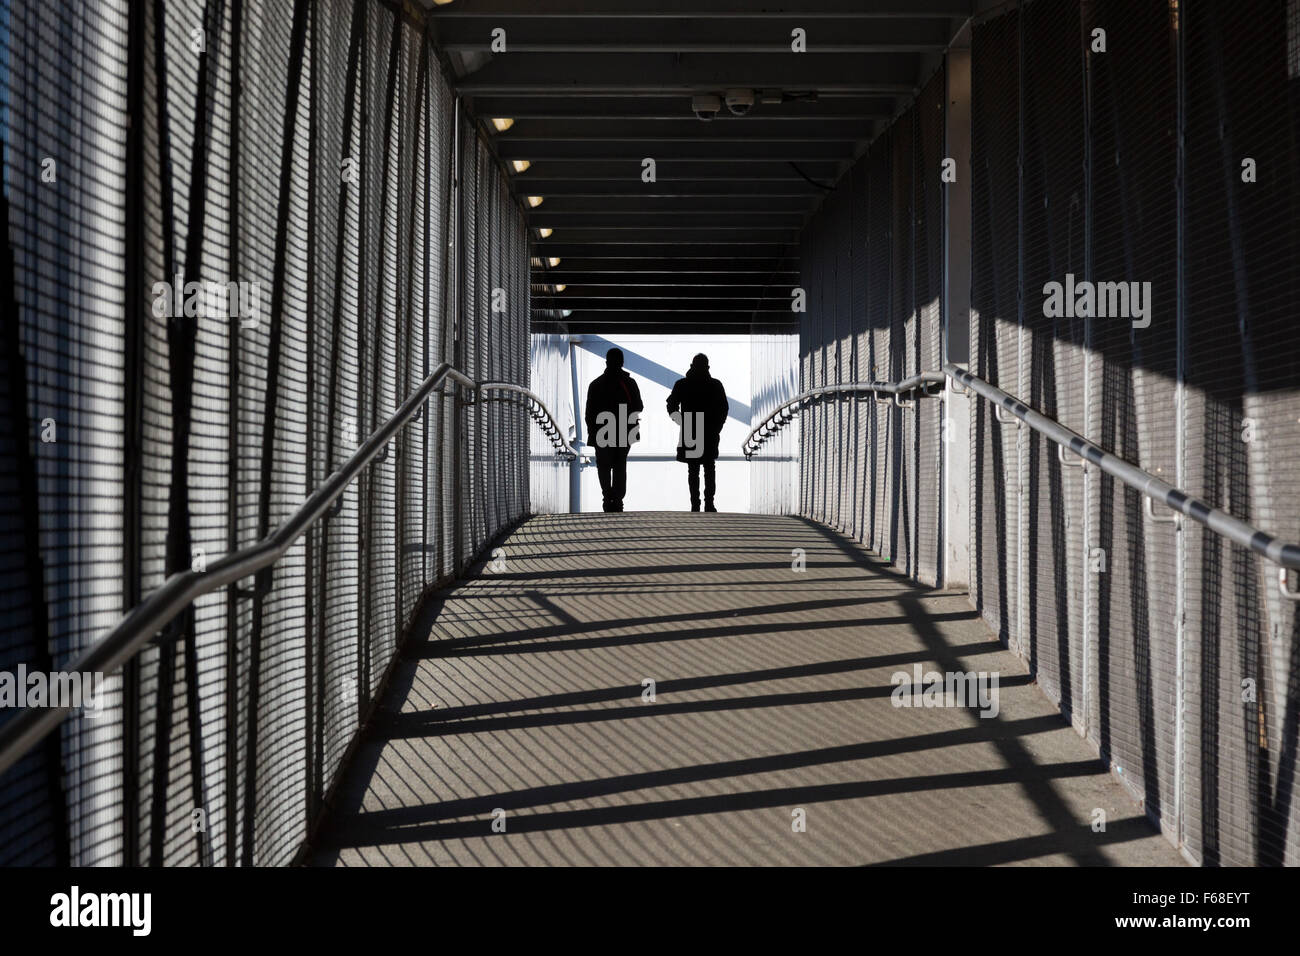 people-crossing-bridge-over-the-railway-feltham-middlesex-F68EYT.jpg